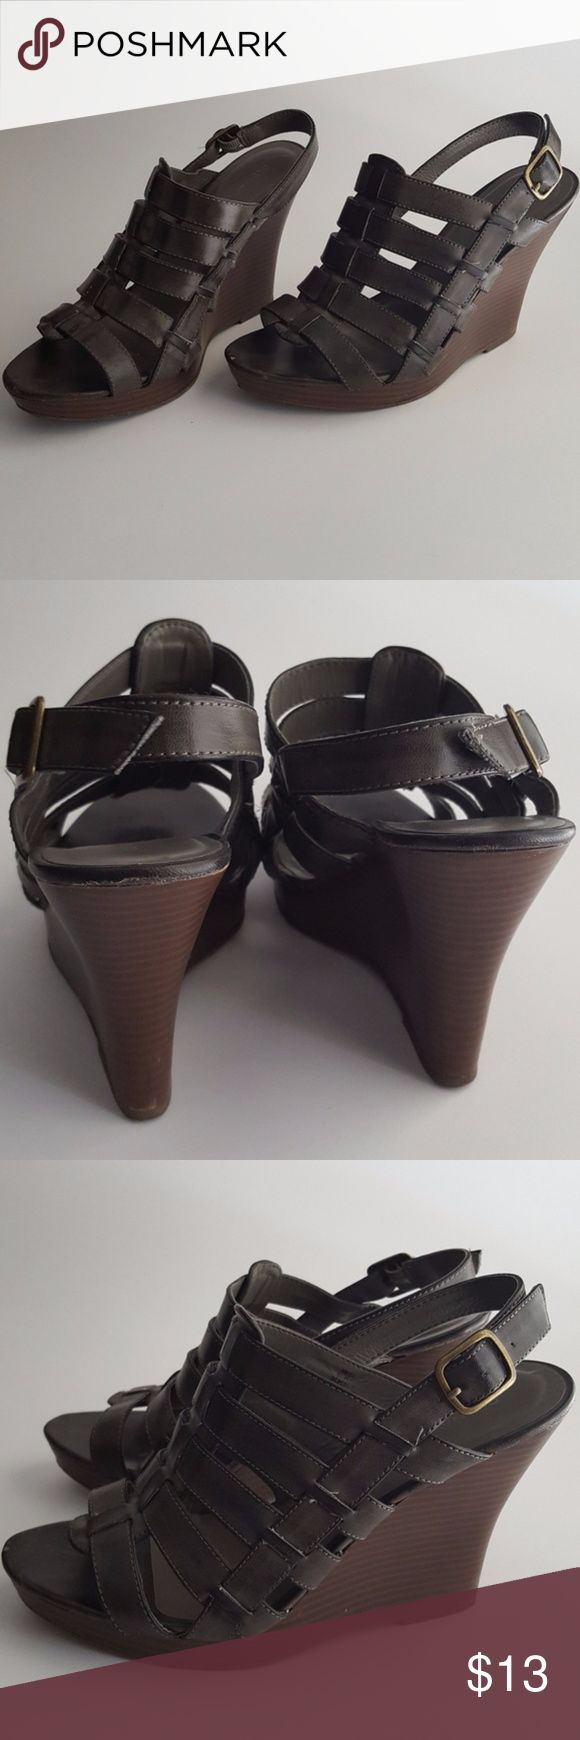 """Old Navy Wedge Sandals Dark gray Old Navy pleather wedge sandals. Size 9. Slight wear in the front of the shoes (see pictures).   1"""" platform & 4.5"""" wedge height. Old Navy Shoes Wedges"""